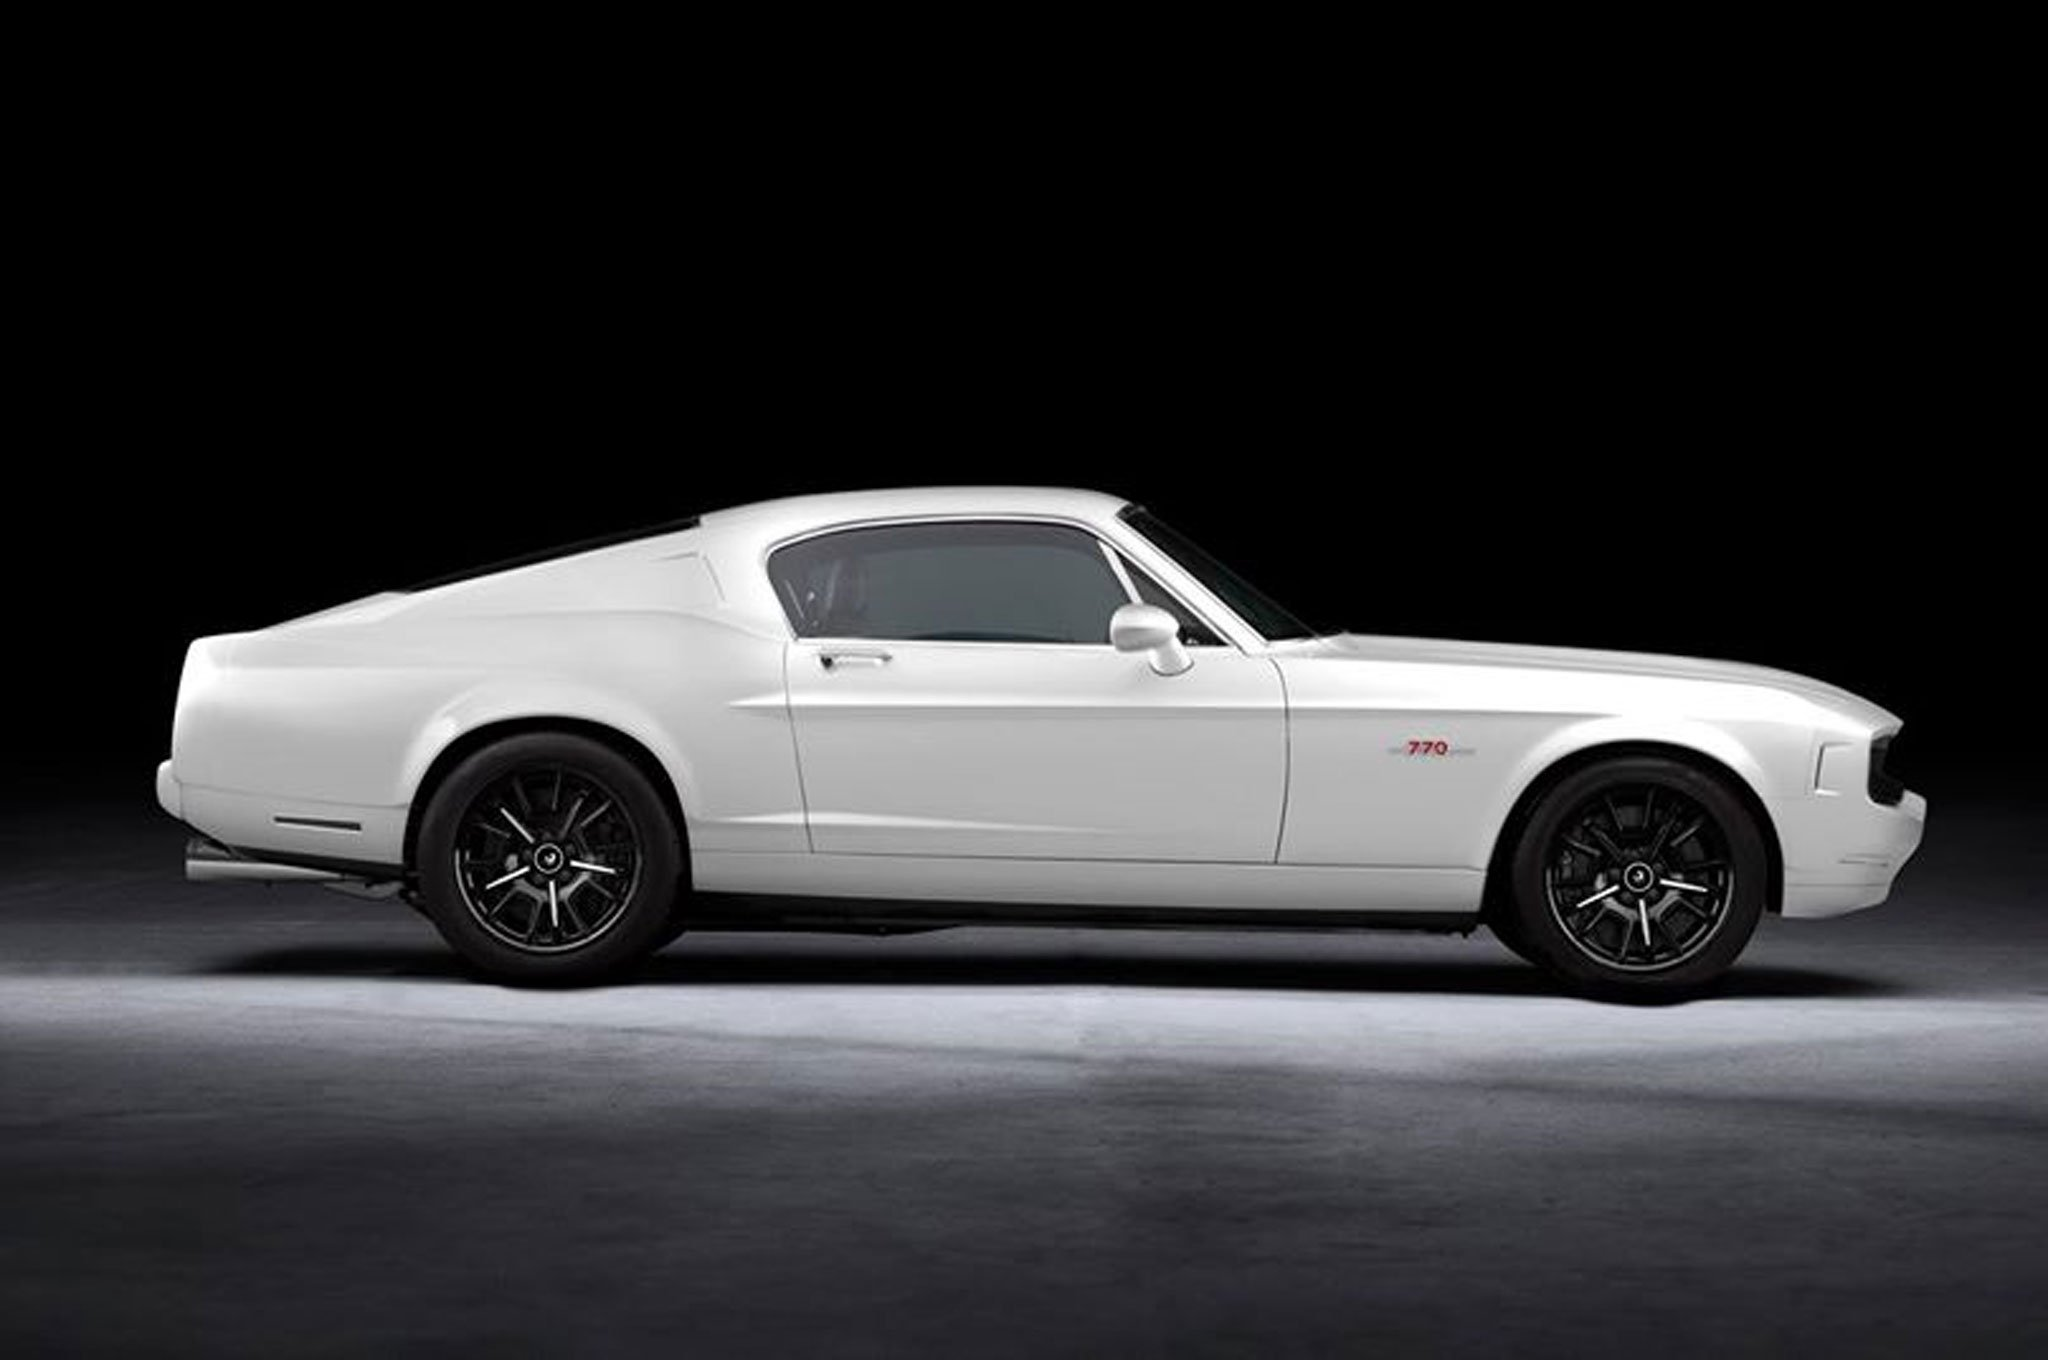 2015 equus bass 770 muscle mustang ford wallpaper 2048x1360 483961 wallpaperup. Black Bedroom Furniture Sets. Home Design Ideas